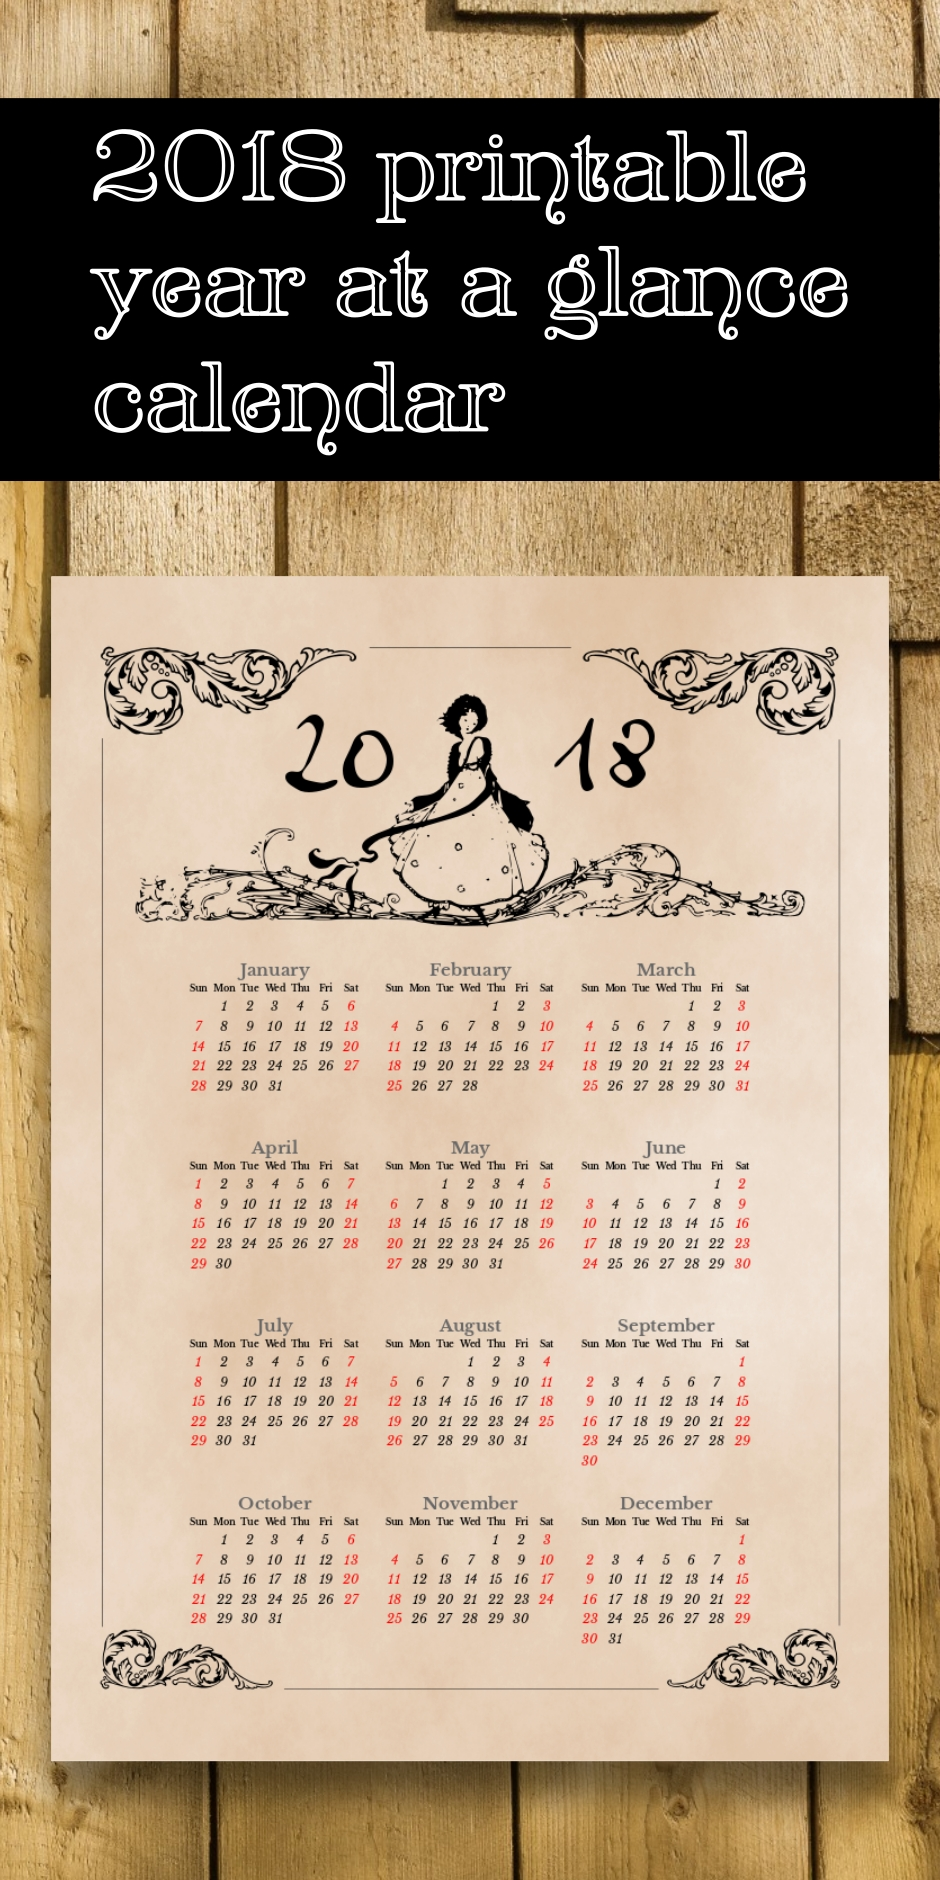 Printable 2018 Year At A Glance Calendar With Simulated Aged Paper